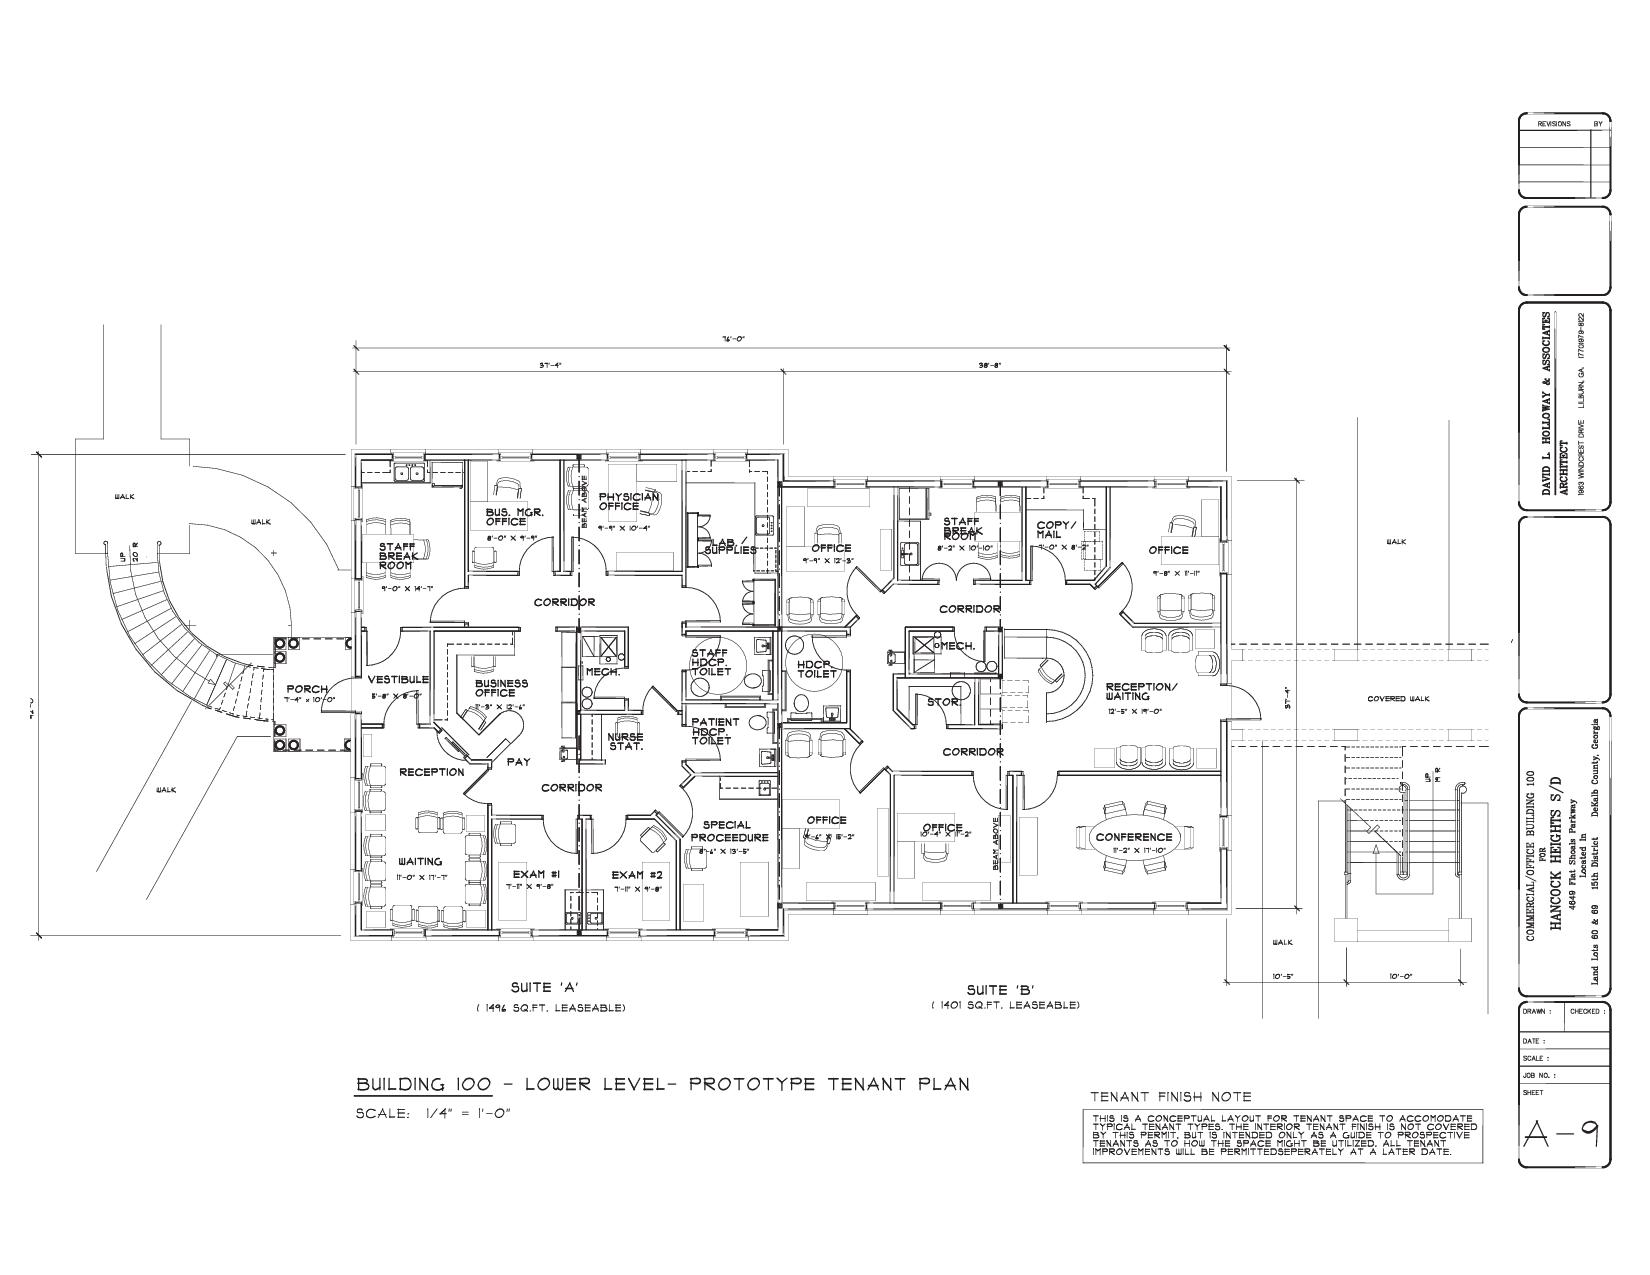 100 Office Building Floor Plans Pdf Central Air